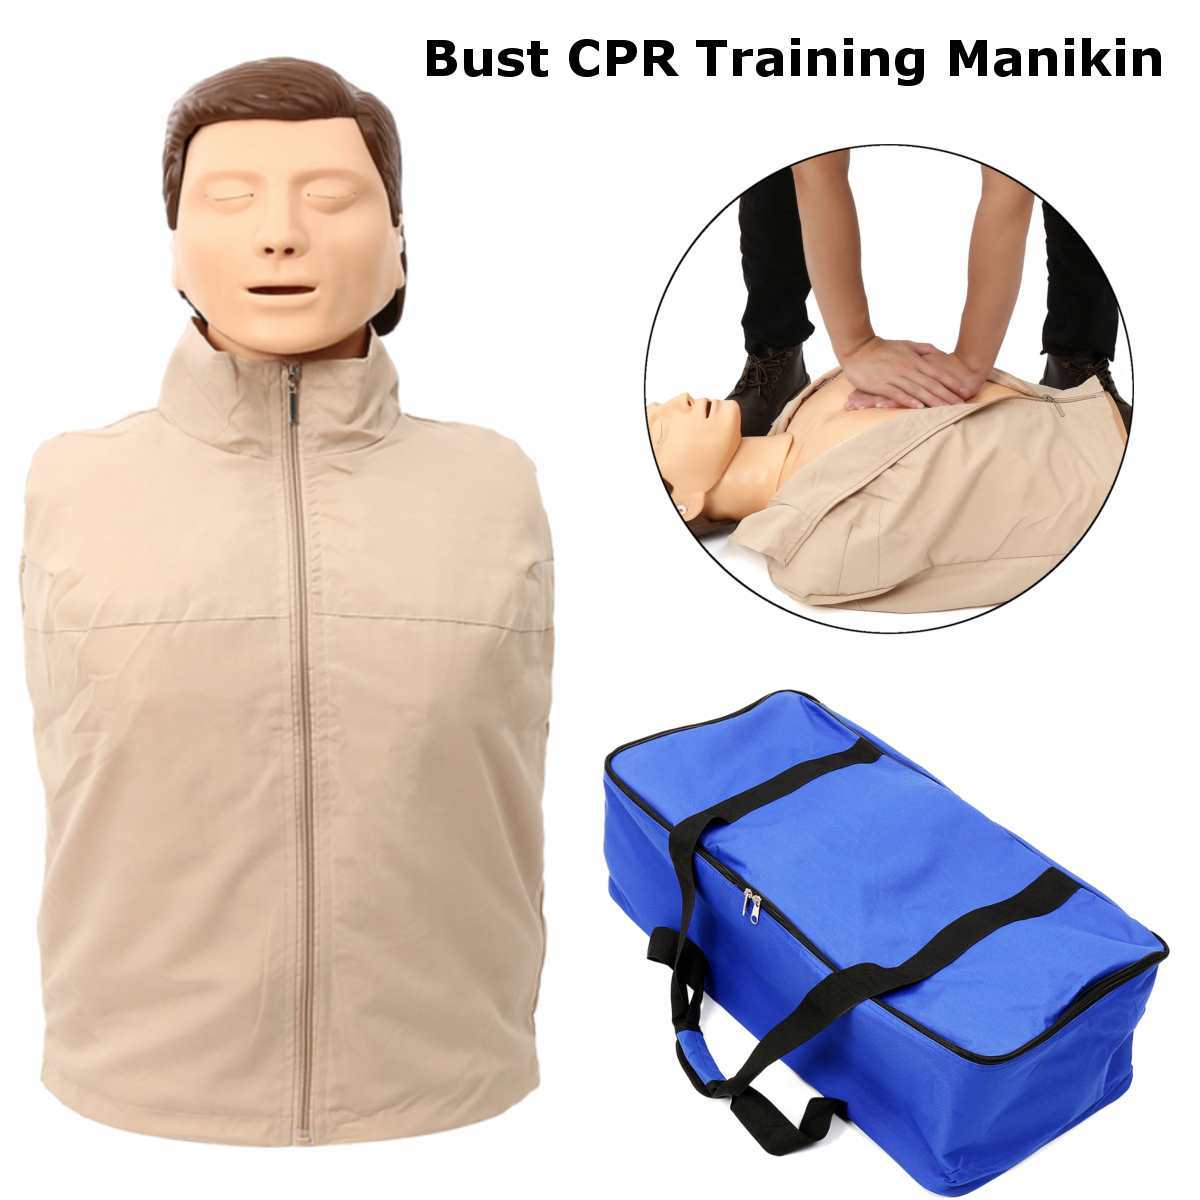 70x22x34cm Bust CPR Training Manikin Professional Nursing Training Mannequin Medical Model Human First Aid Training Model New70x22x34cm Bust CPR Training Manikin Professional Nursing Training Mannequin Medical Model Human First Aid Training Model New